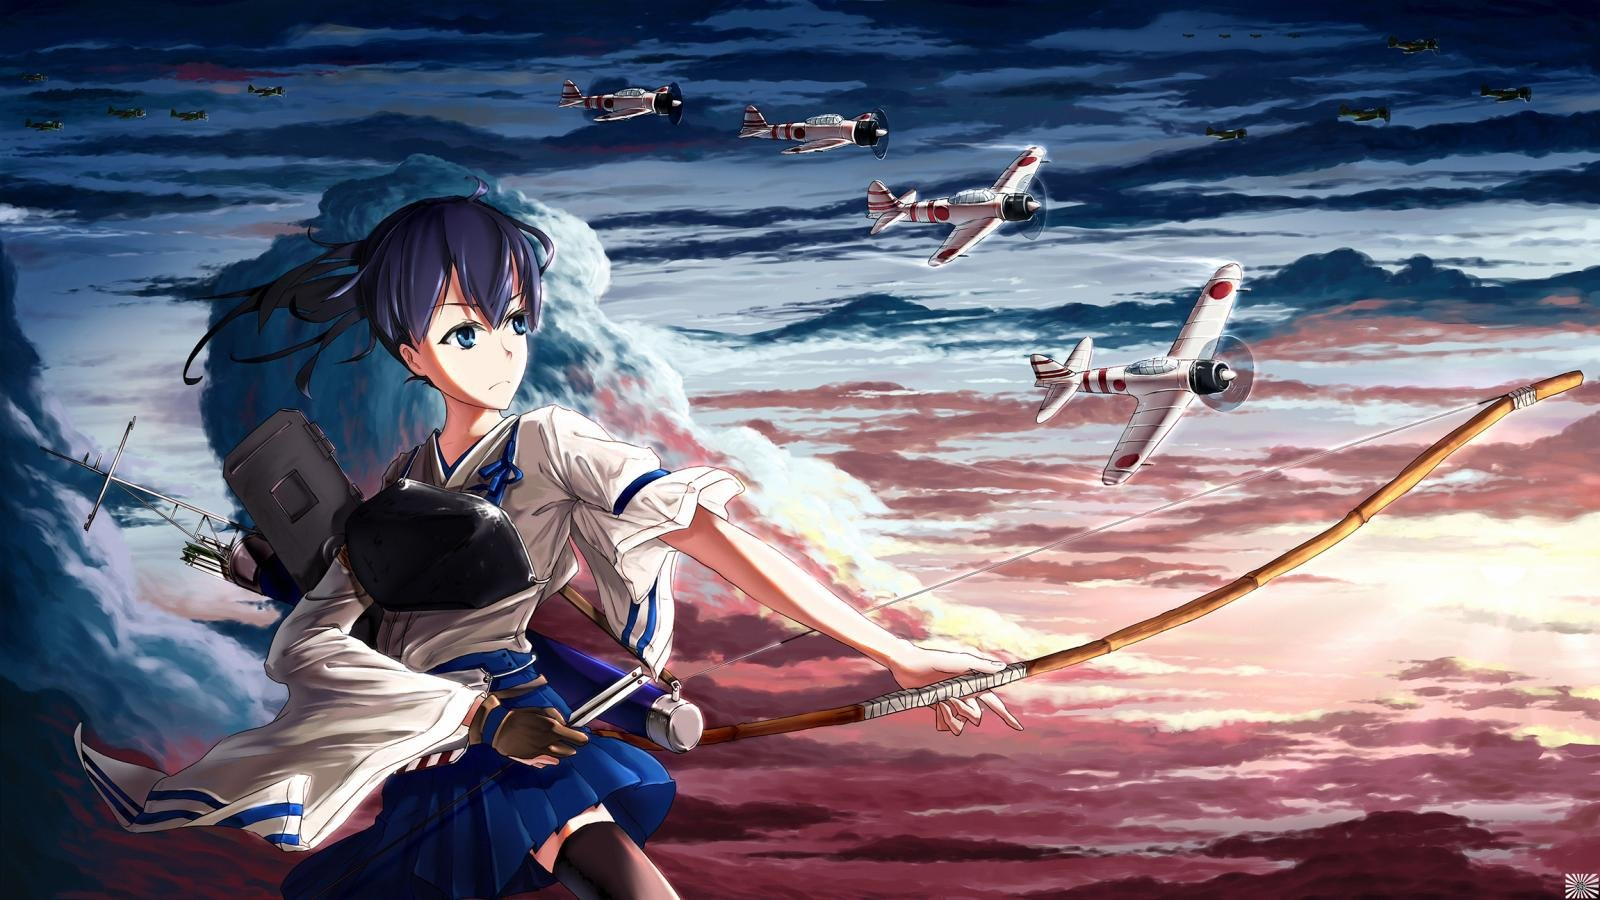 Download hd 1600x900 Kantai Collection desktop background ID:331407 for free